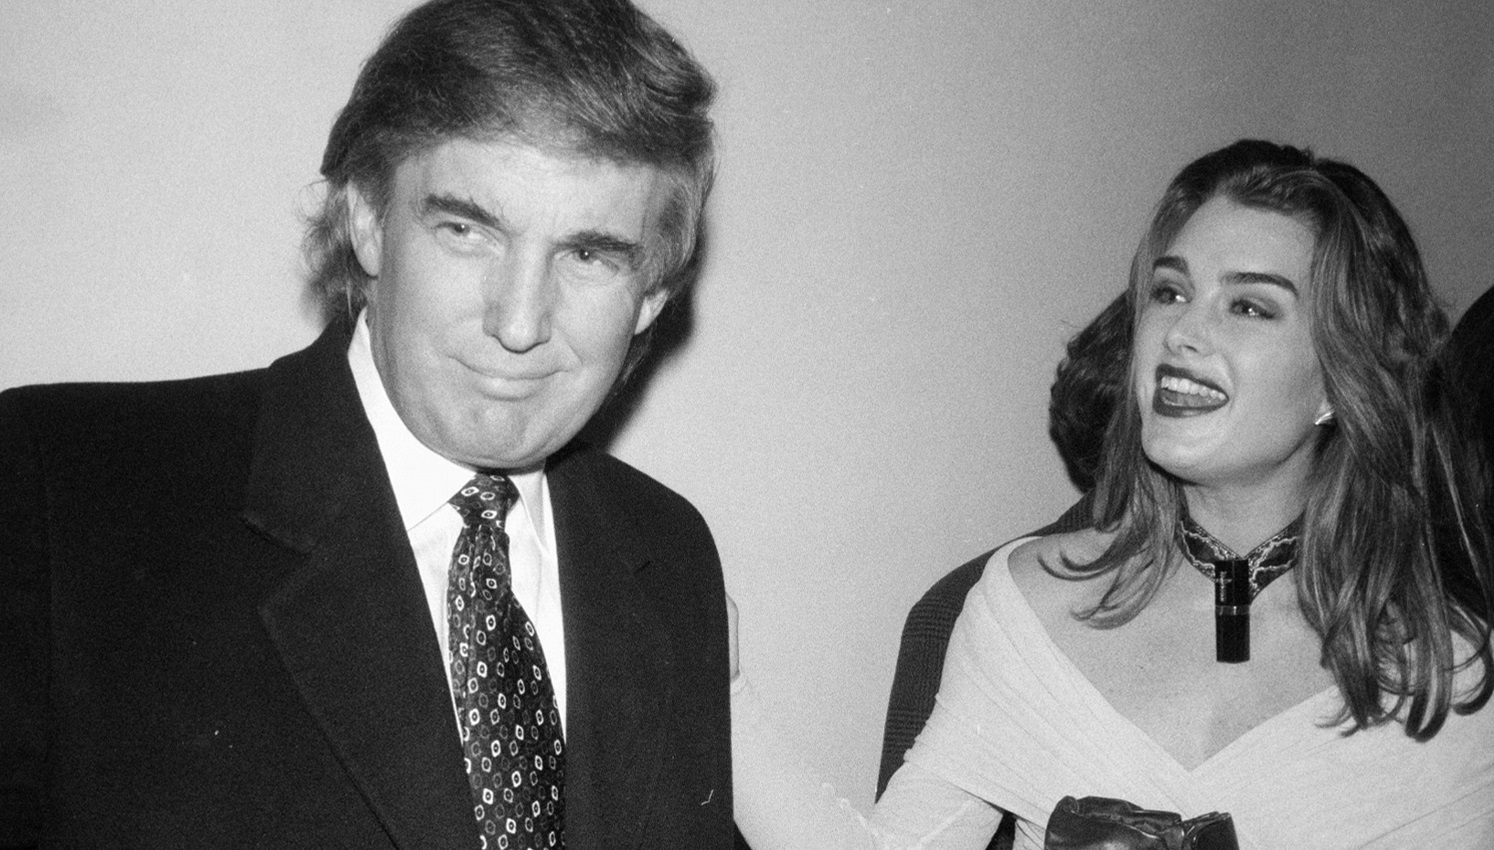 Donald Trump and Brook Shields